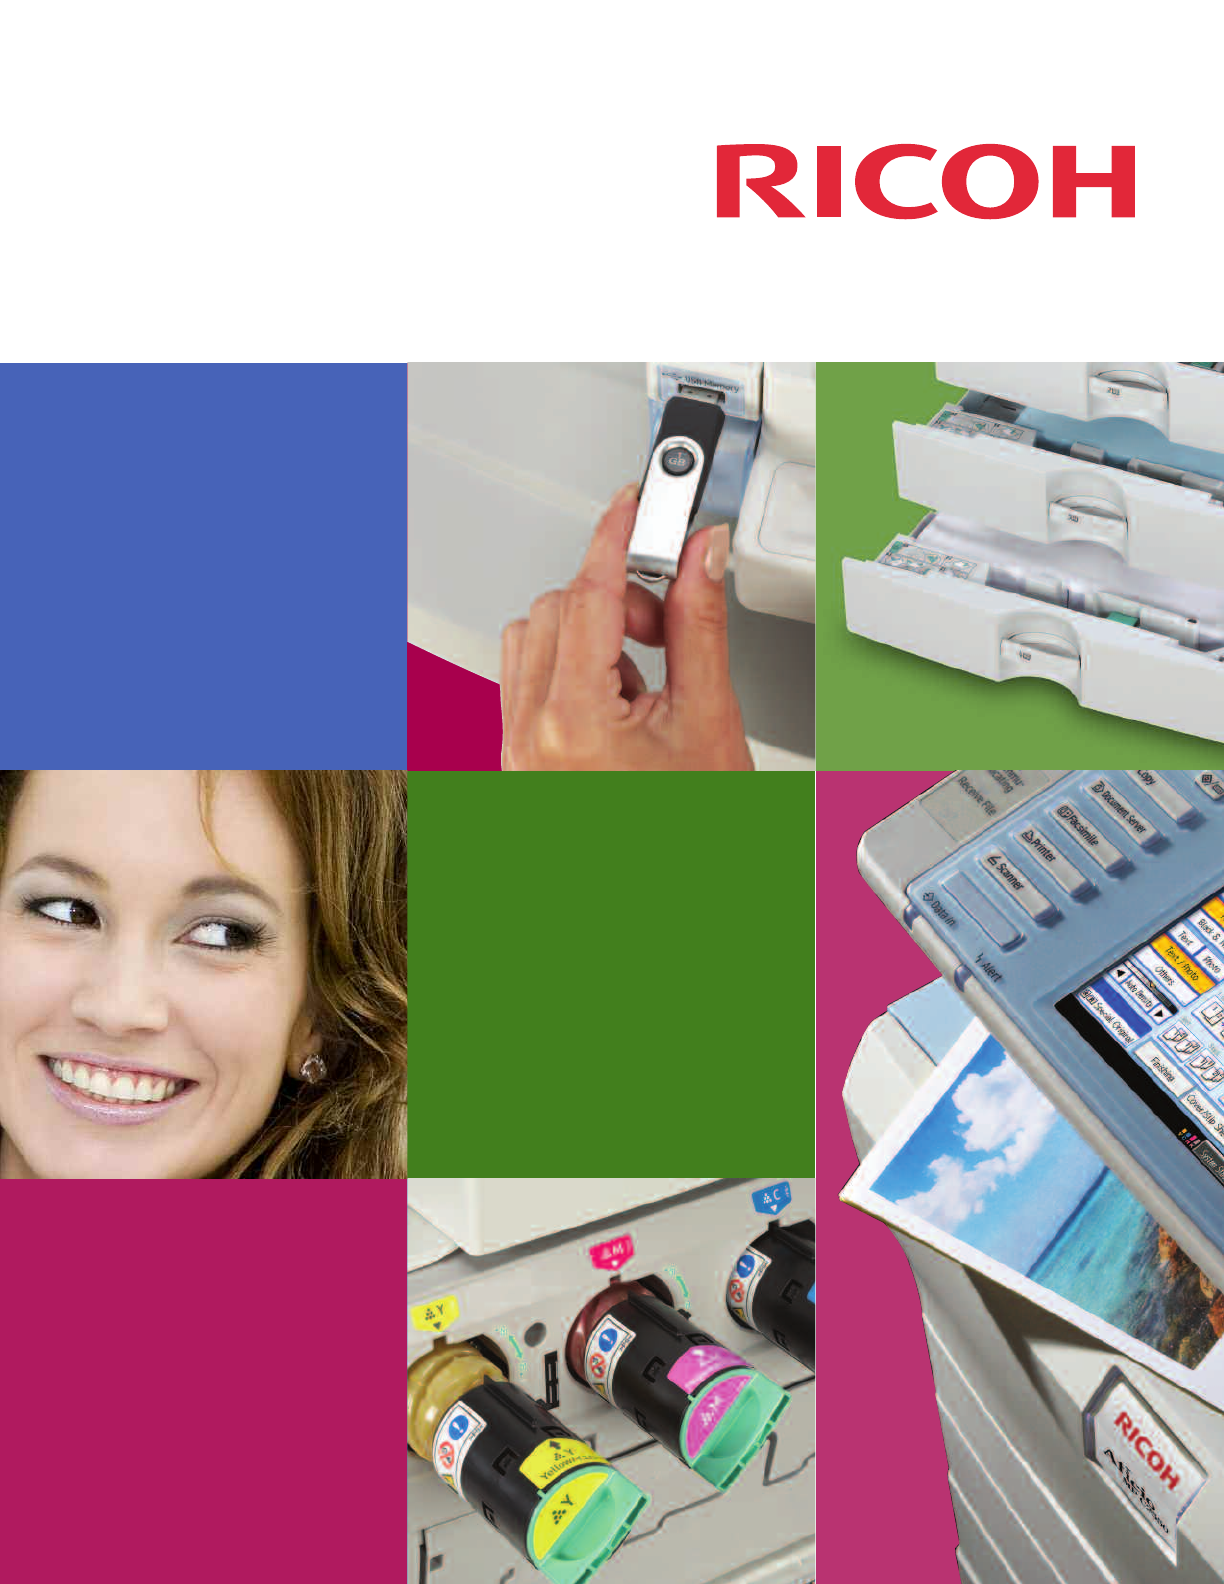 ricoh aficio mp c2550 service manual pdf